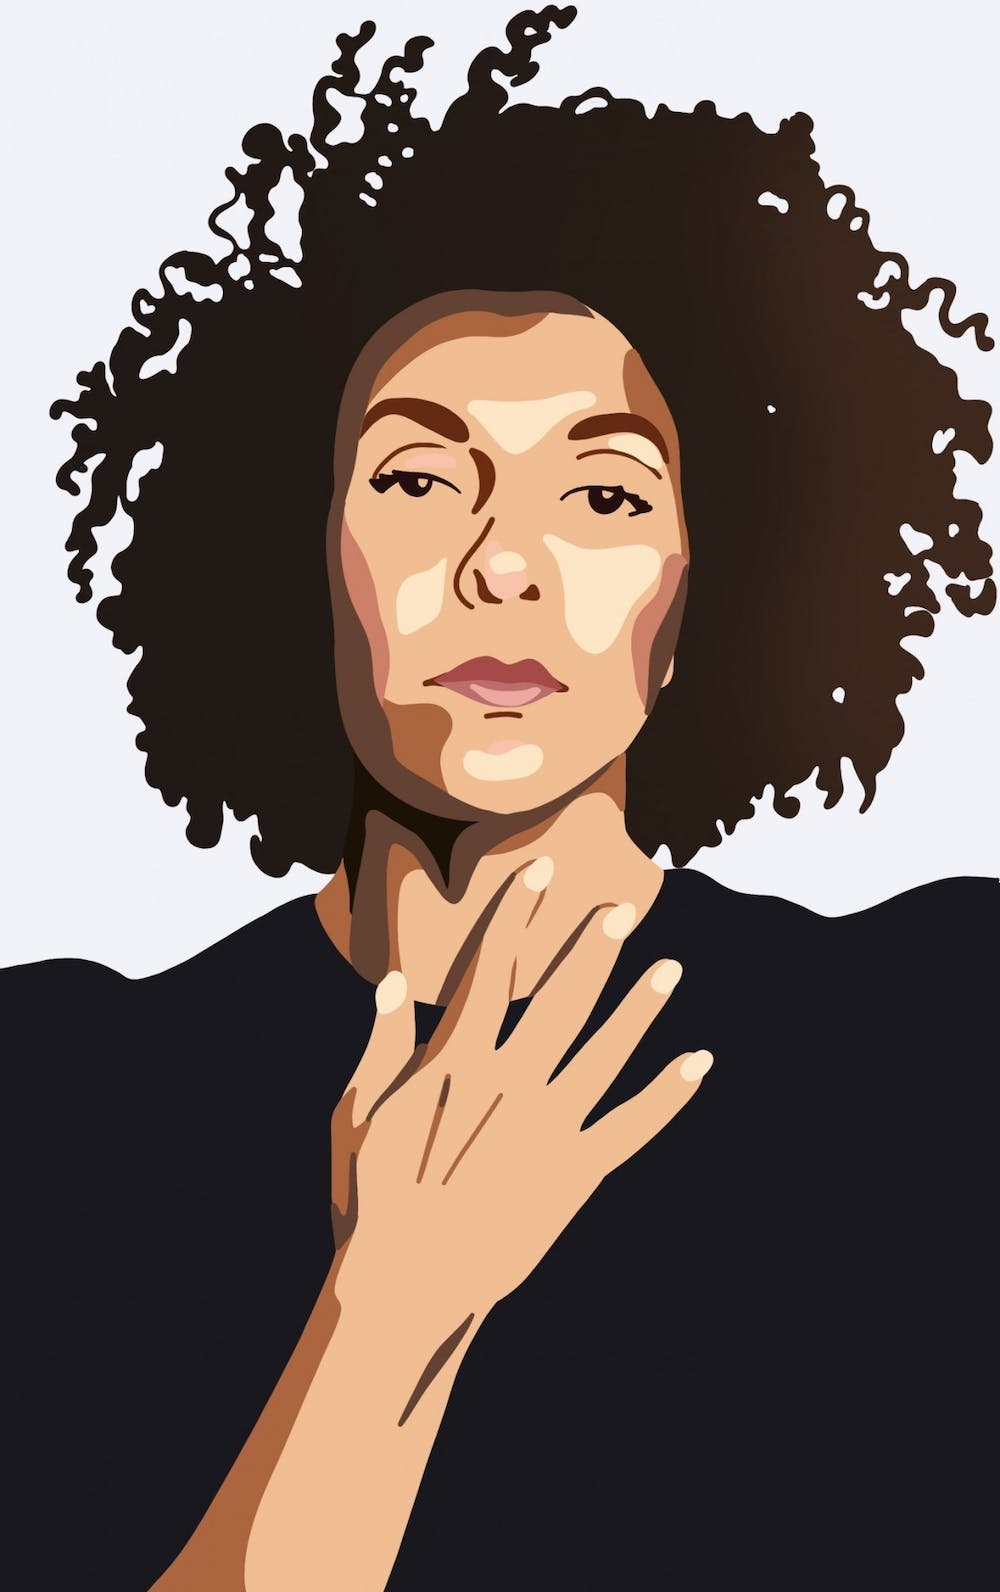 <p>Choreographer Maya Taylor worked with artists like OneRepublic, Arcade Fire, SZA, and Solange Knowles.</p>